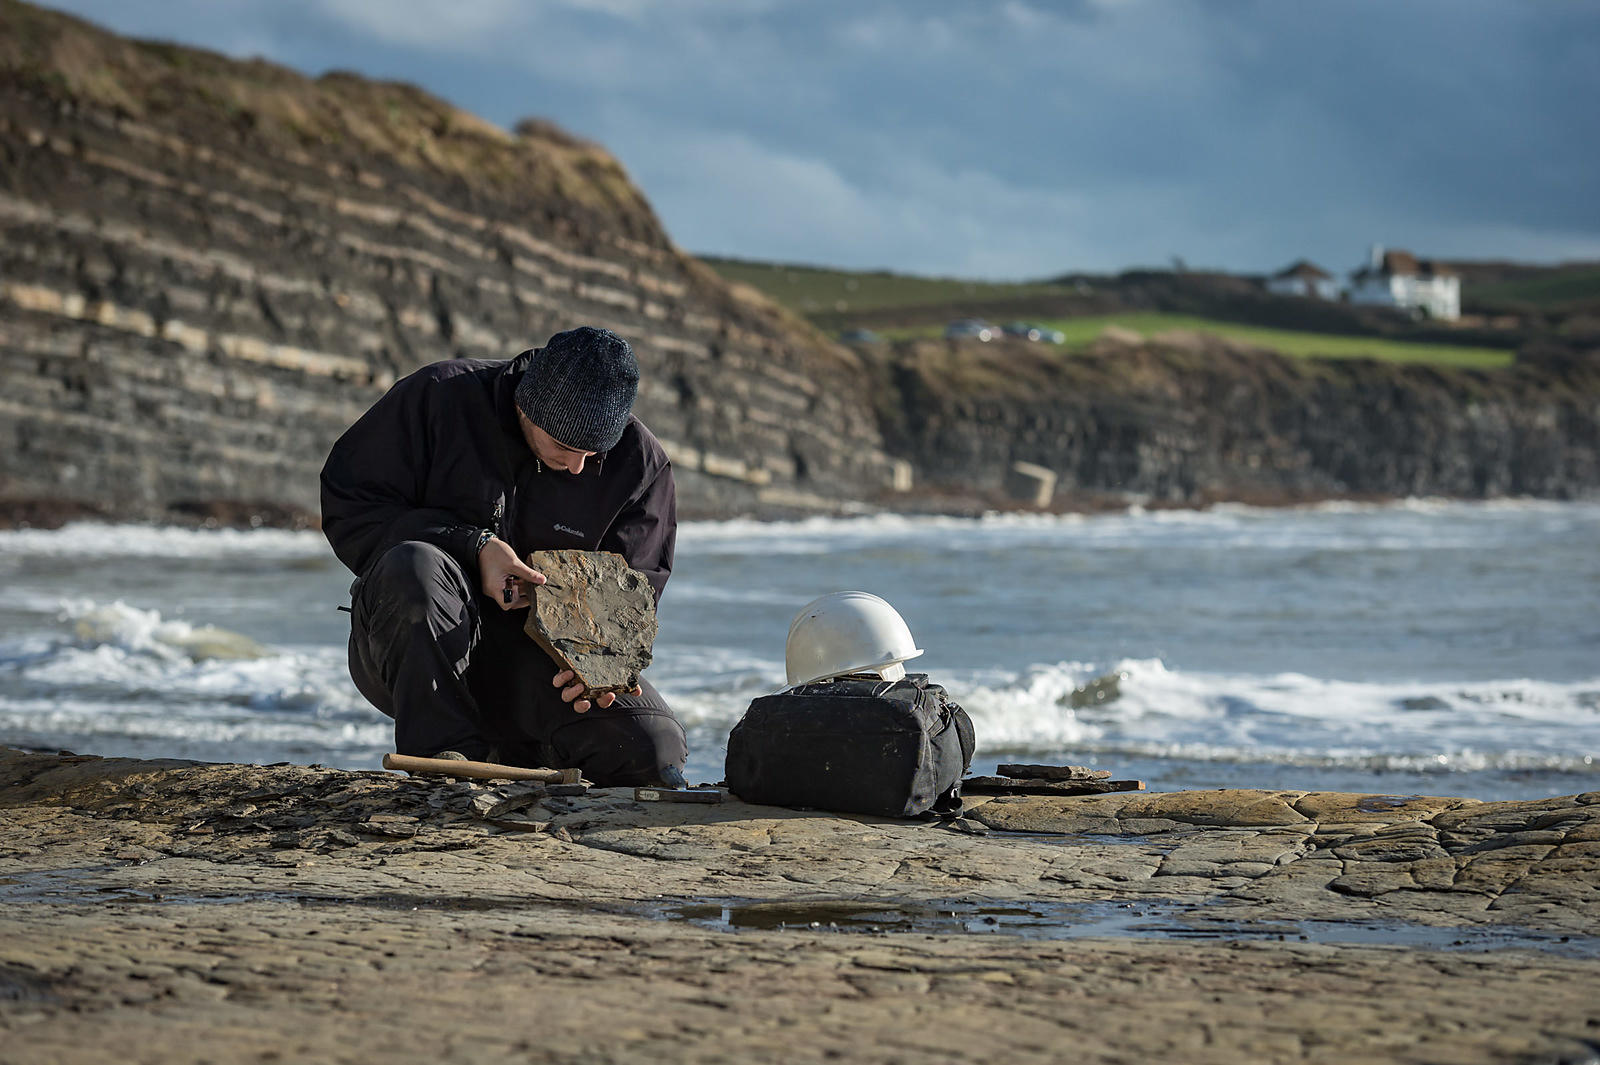 Palaeontology Student looking for Fossils on the Jurassic Coast, Dorset